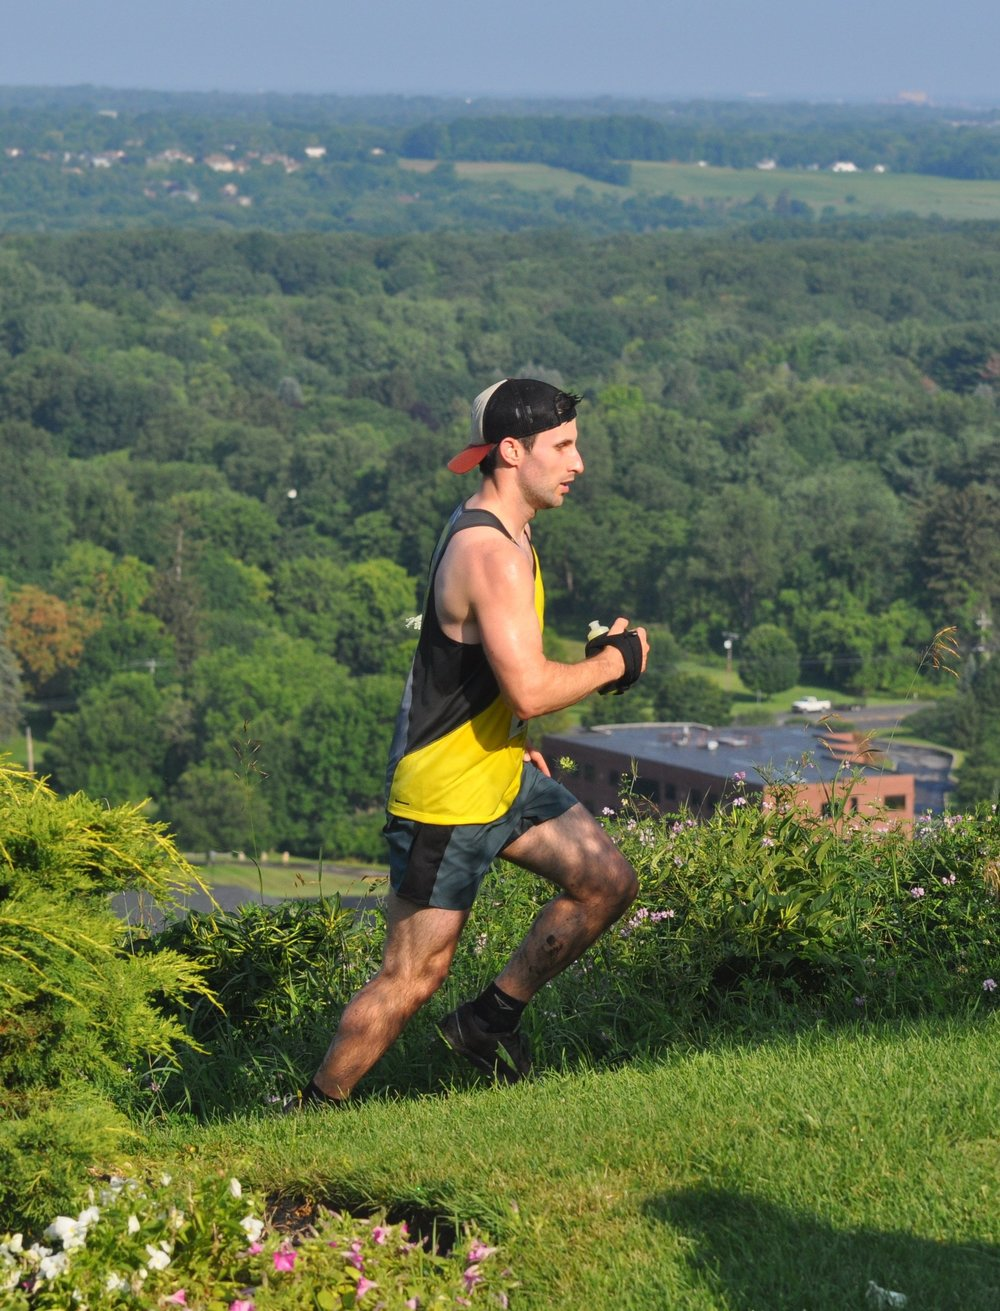 Vidmar tearing up the #TrailsRoc 0 SPF course